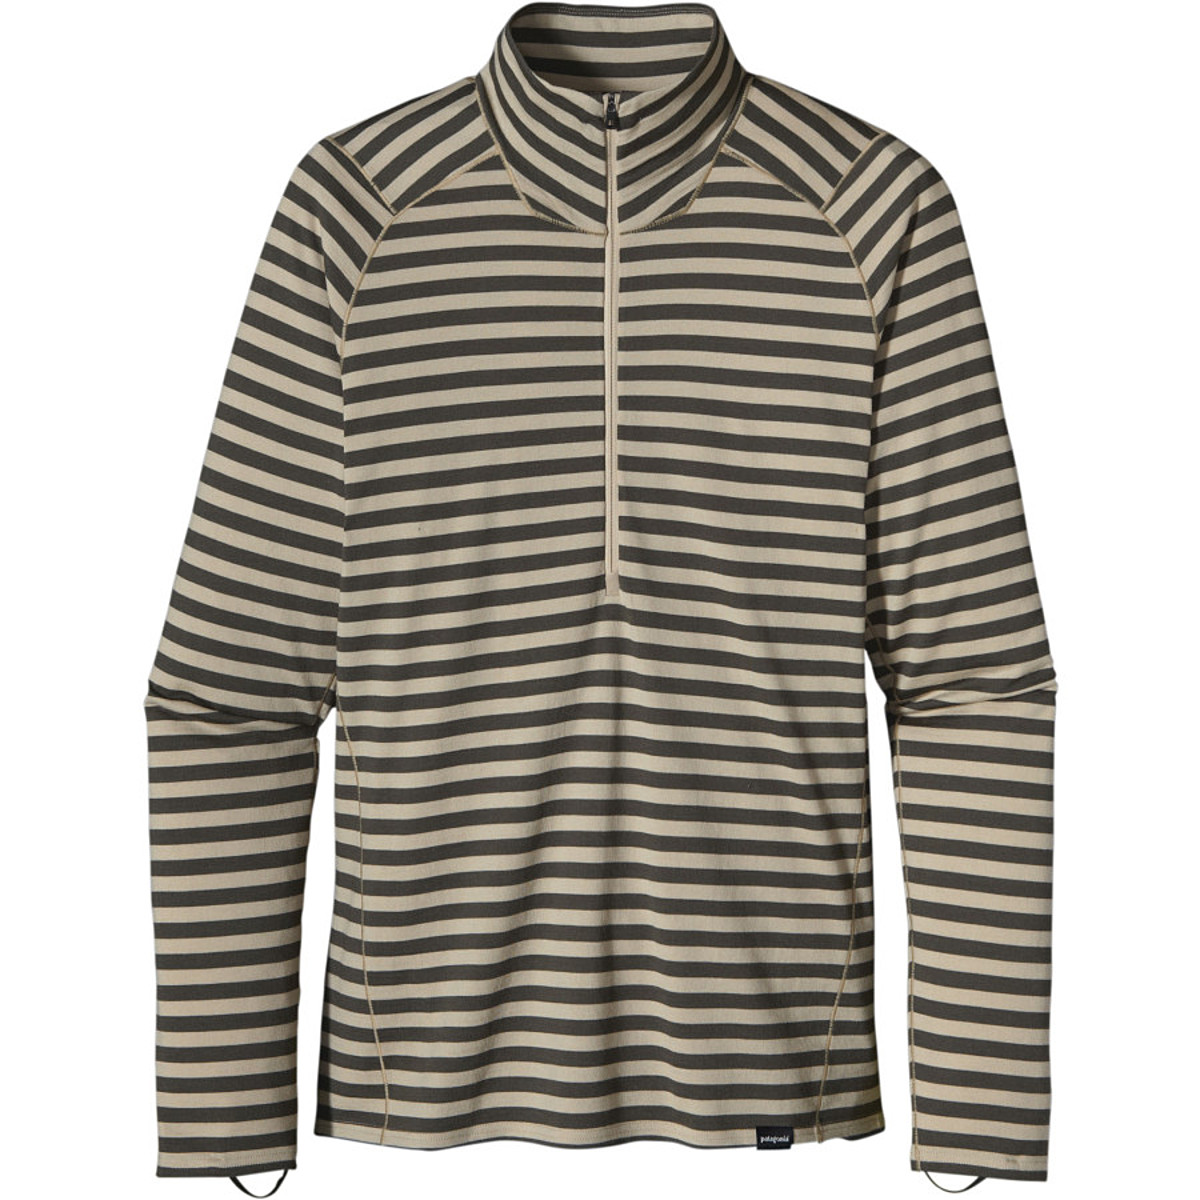 photo: Patagonia Merino 3 Midweight Zip-Neck base layer top